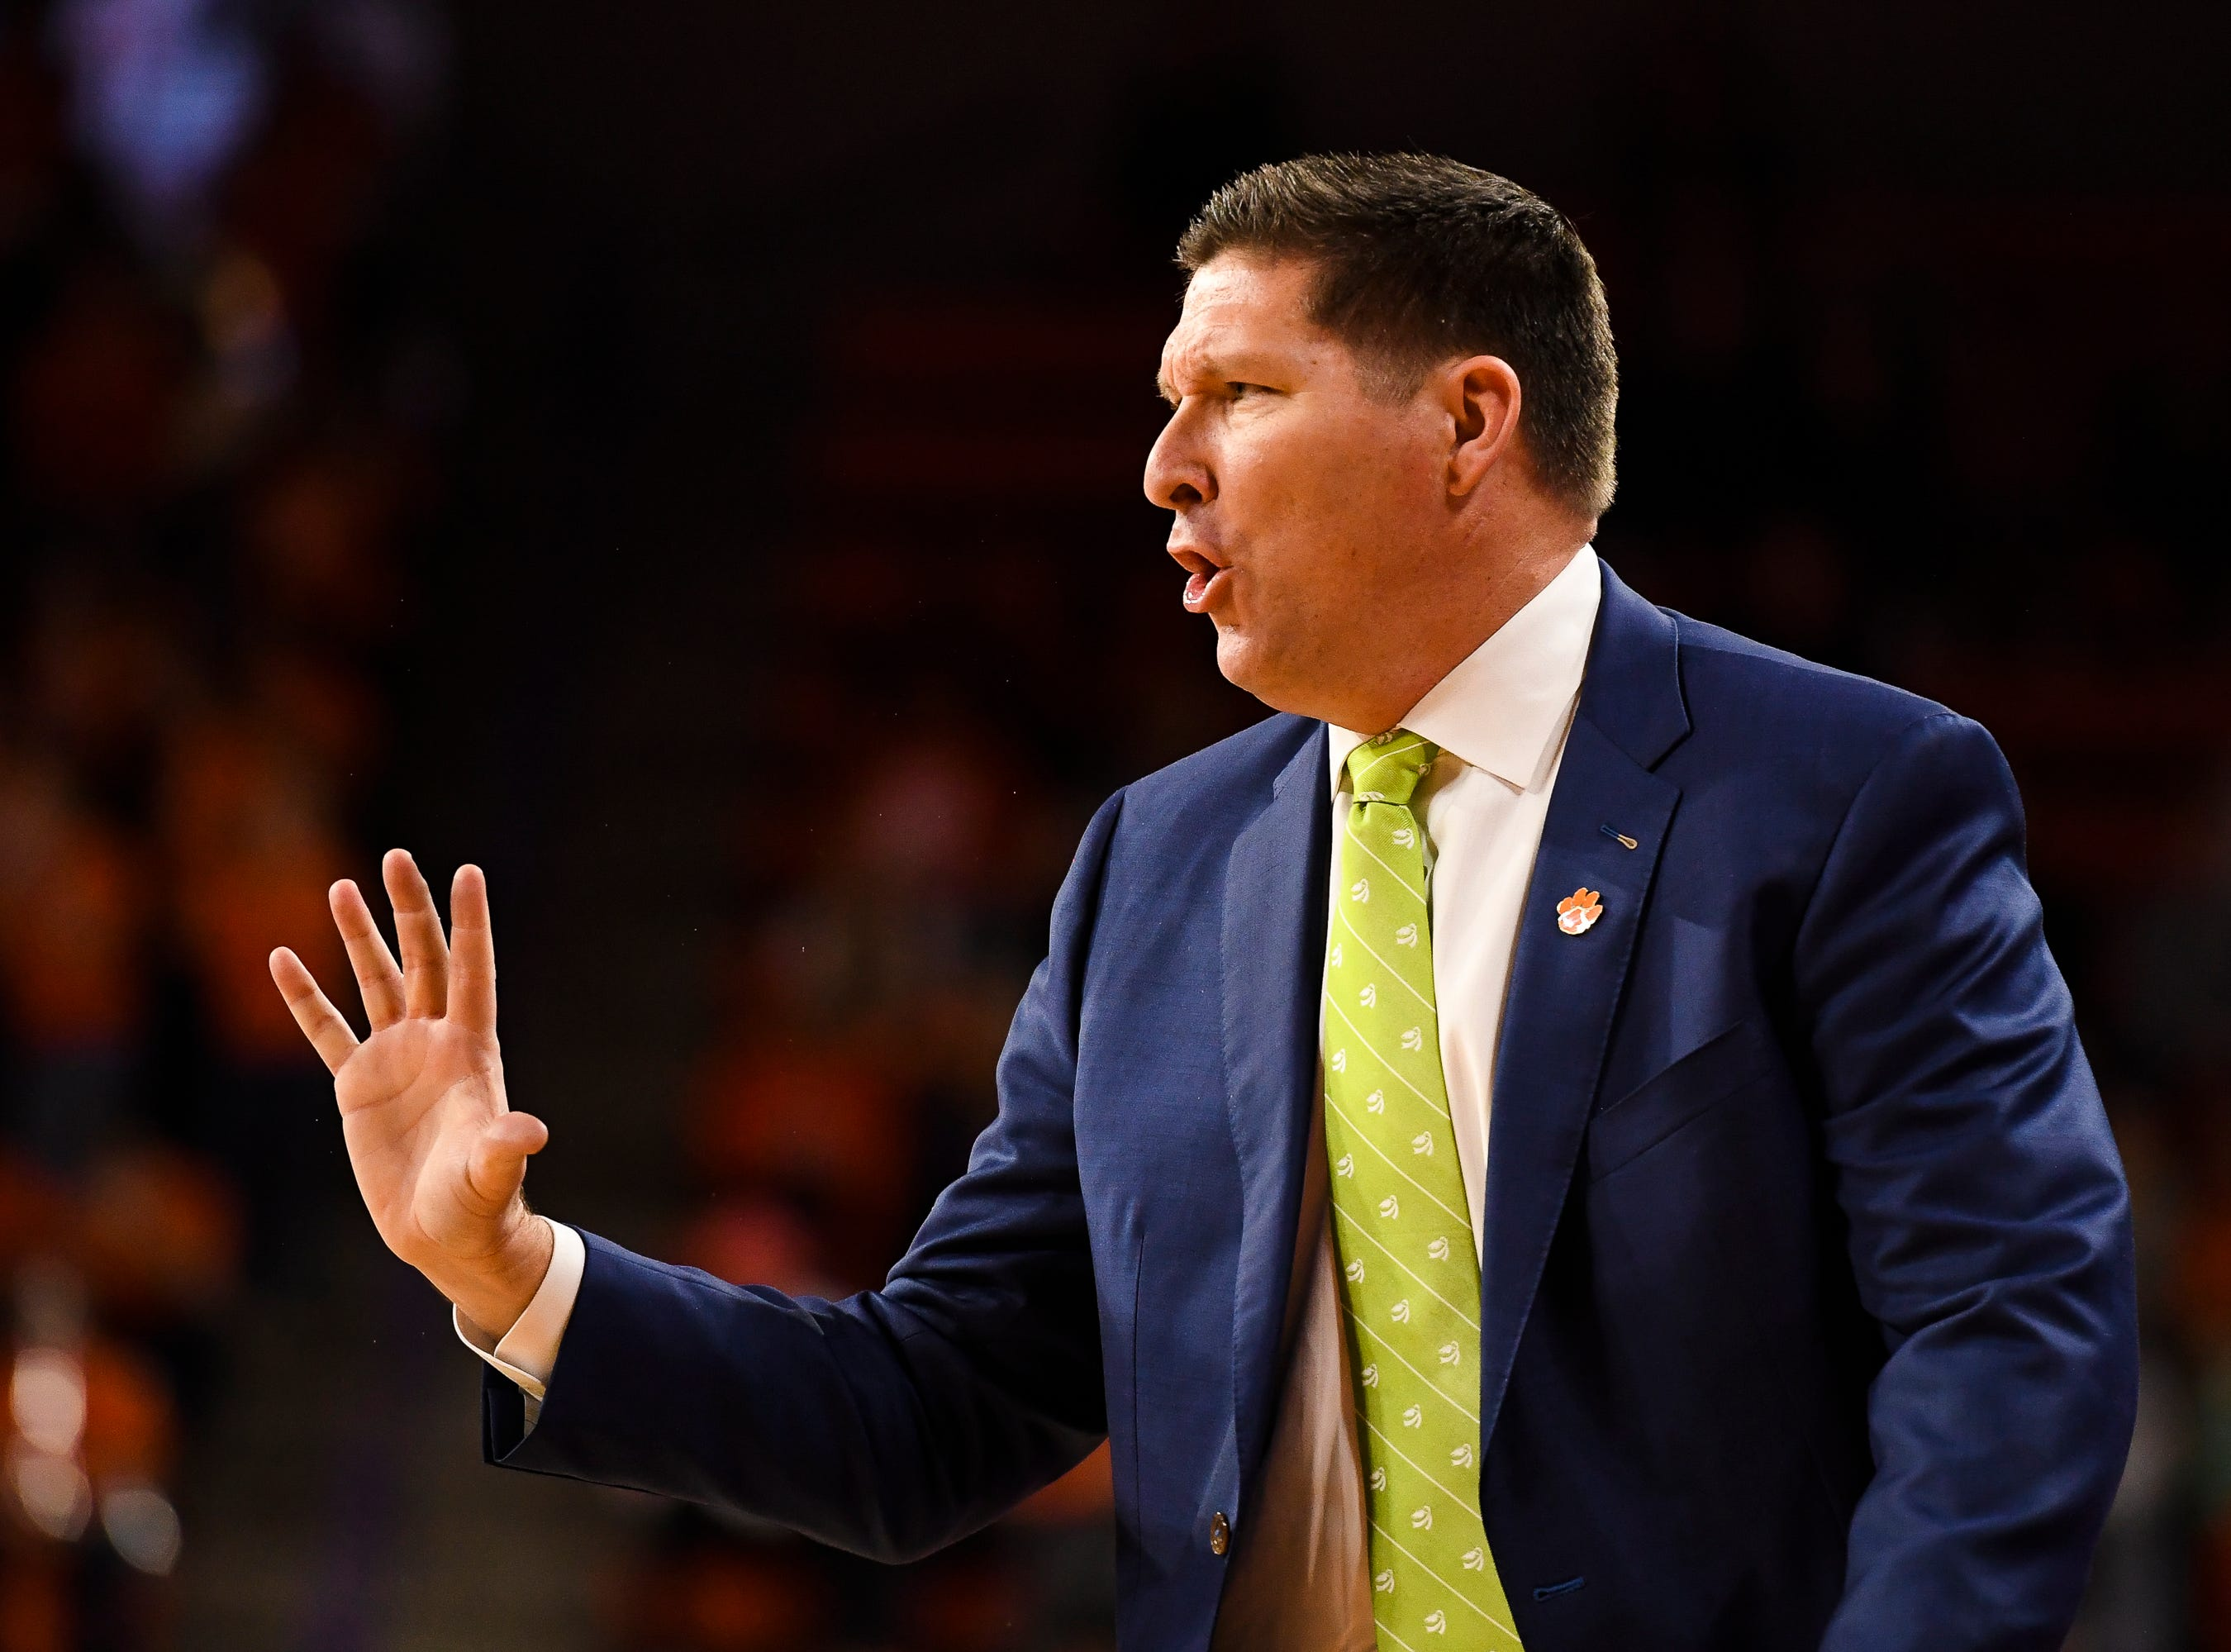 Clemson head coach Brad Brownell during their game against Pittsburgh at Littlejohn Stadium on Tuesday, Jan. 29, 2019.